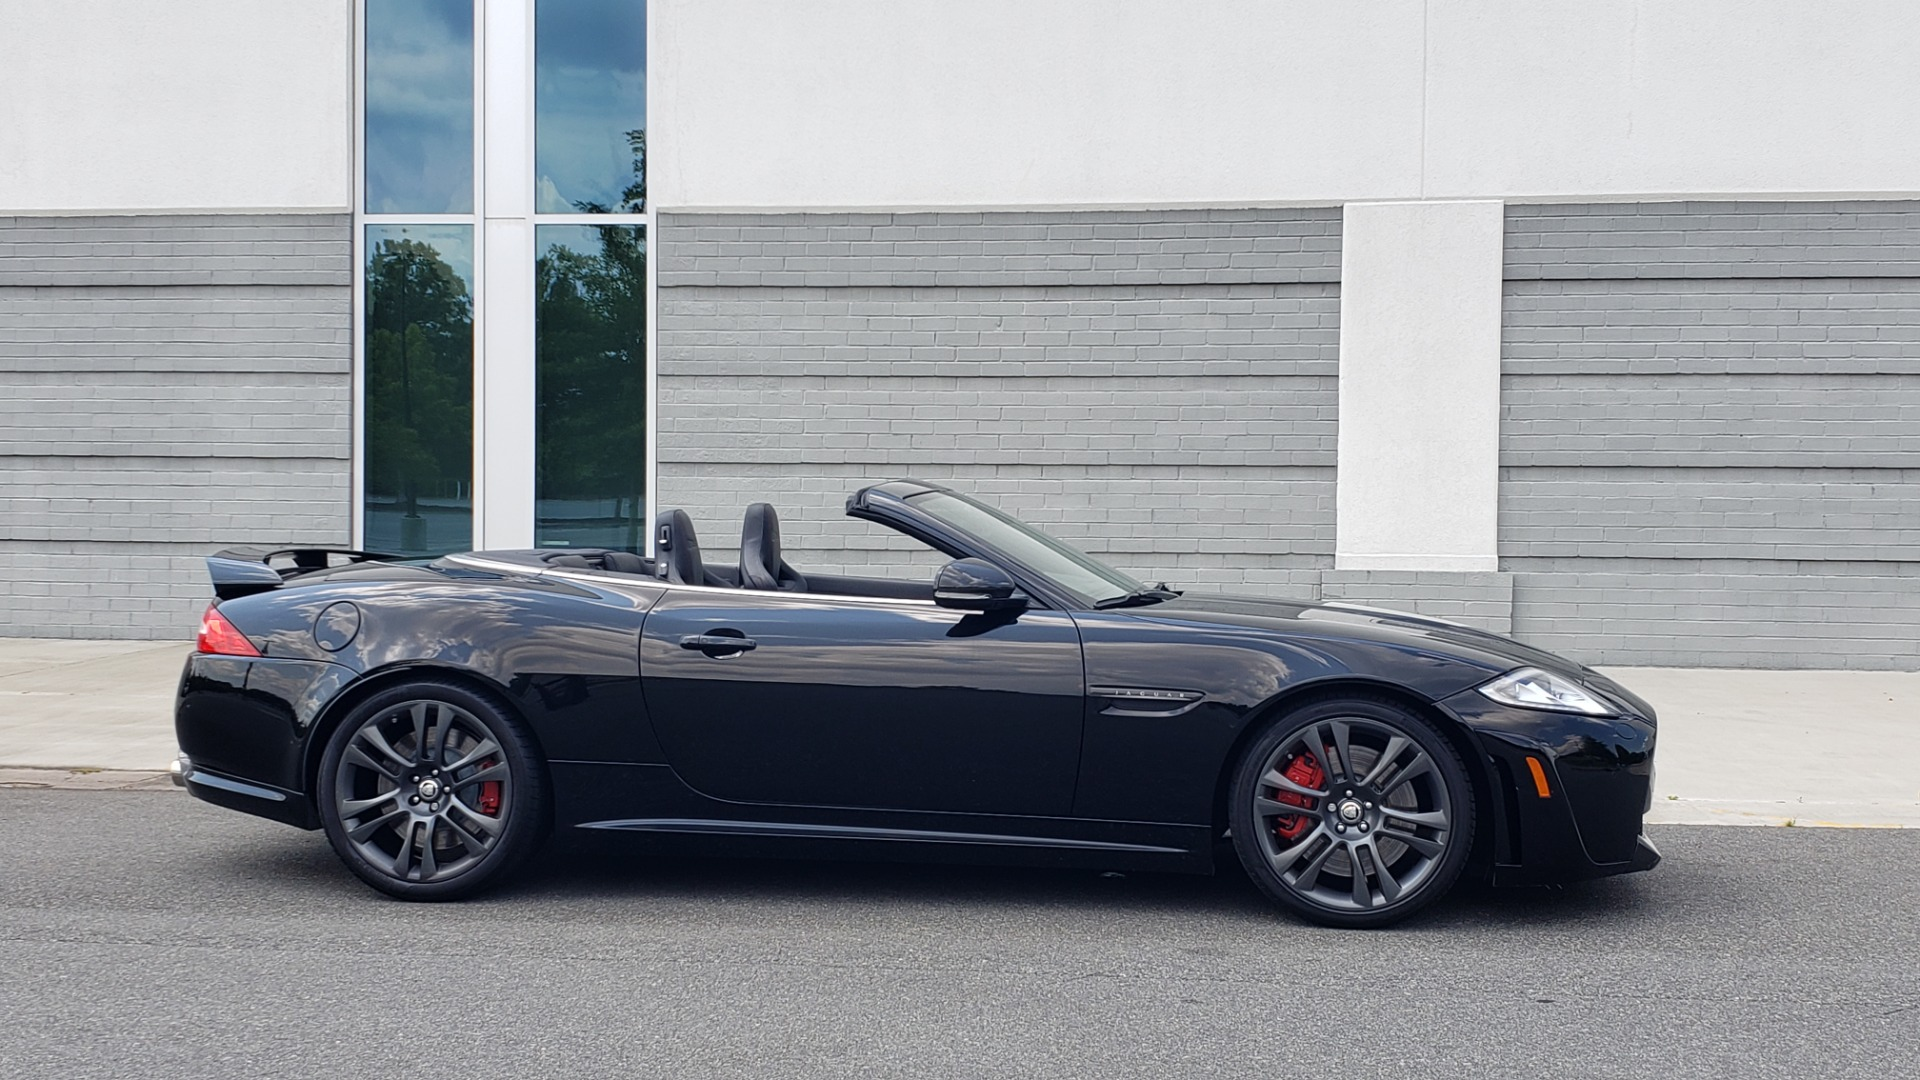 Used 2013 Jaguar XK R-S CONVERTIBLE / SC 5.0L V8 (550HP) / ZF 6-SPD AUTO / NAV / REARVIEW for sale $74,995 at Formula Imports in Charlotte NC 28227 12